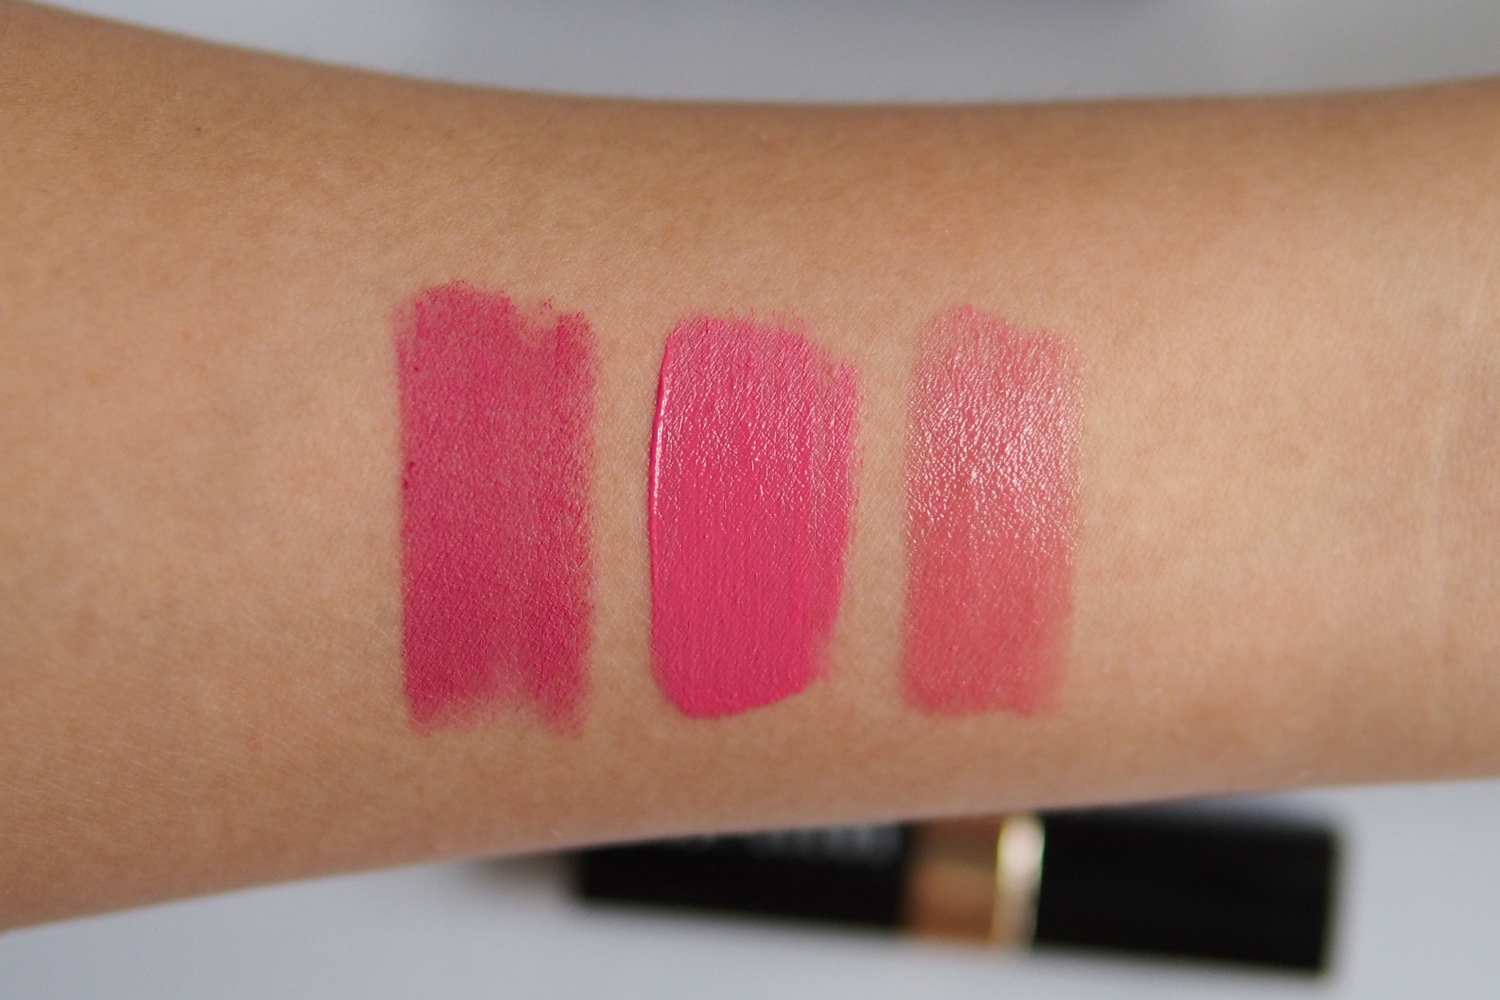 From left: Avon True Color Perfectly Matte Lipstick in  Adoring Love , Ofra Long Lasting Liquid Lipstick in  Hollywood , Bobbi Brown Nourishing Lip Color in  Island Pink